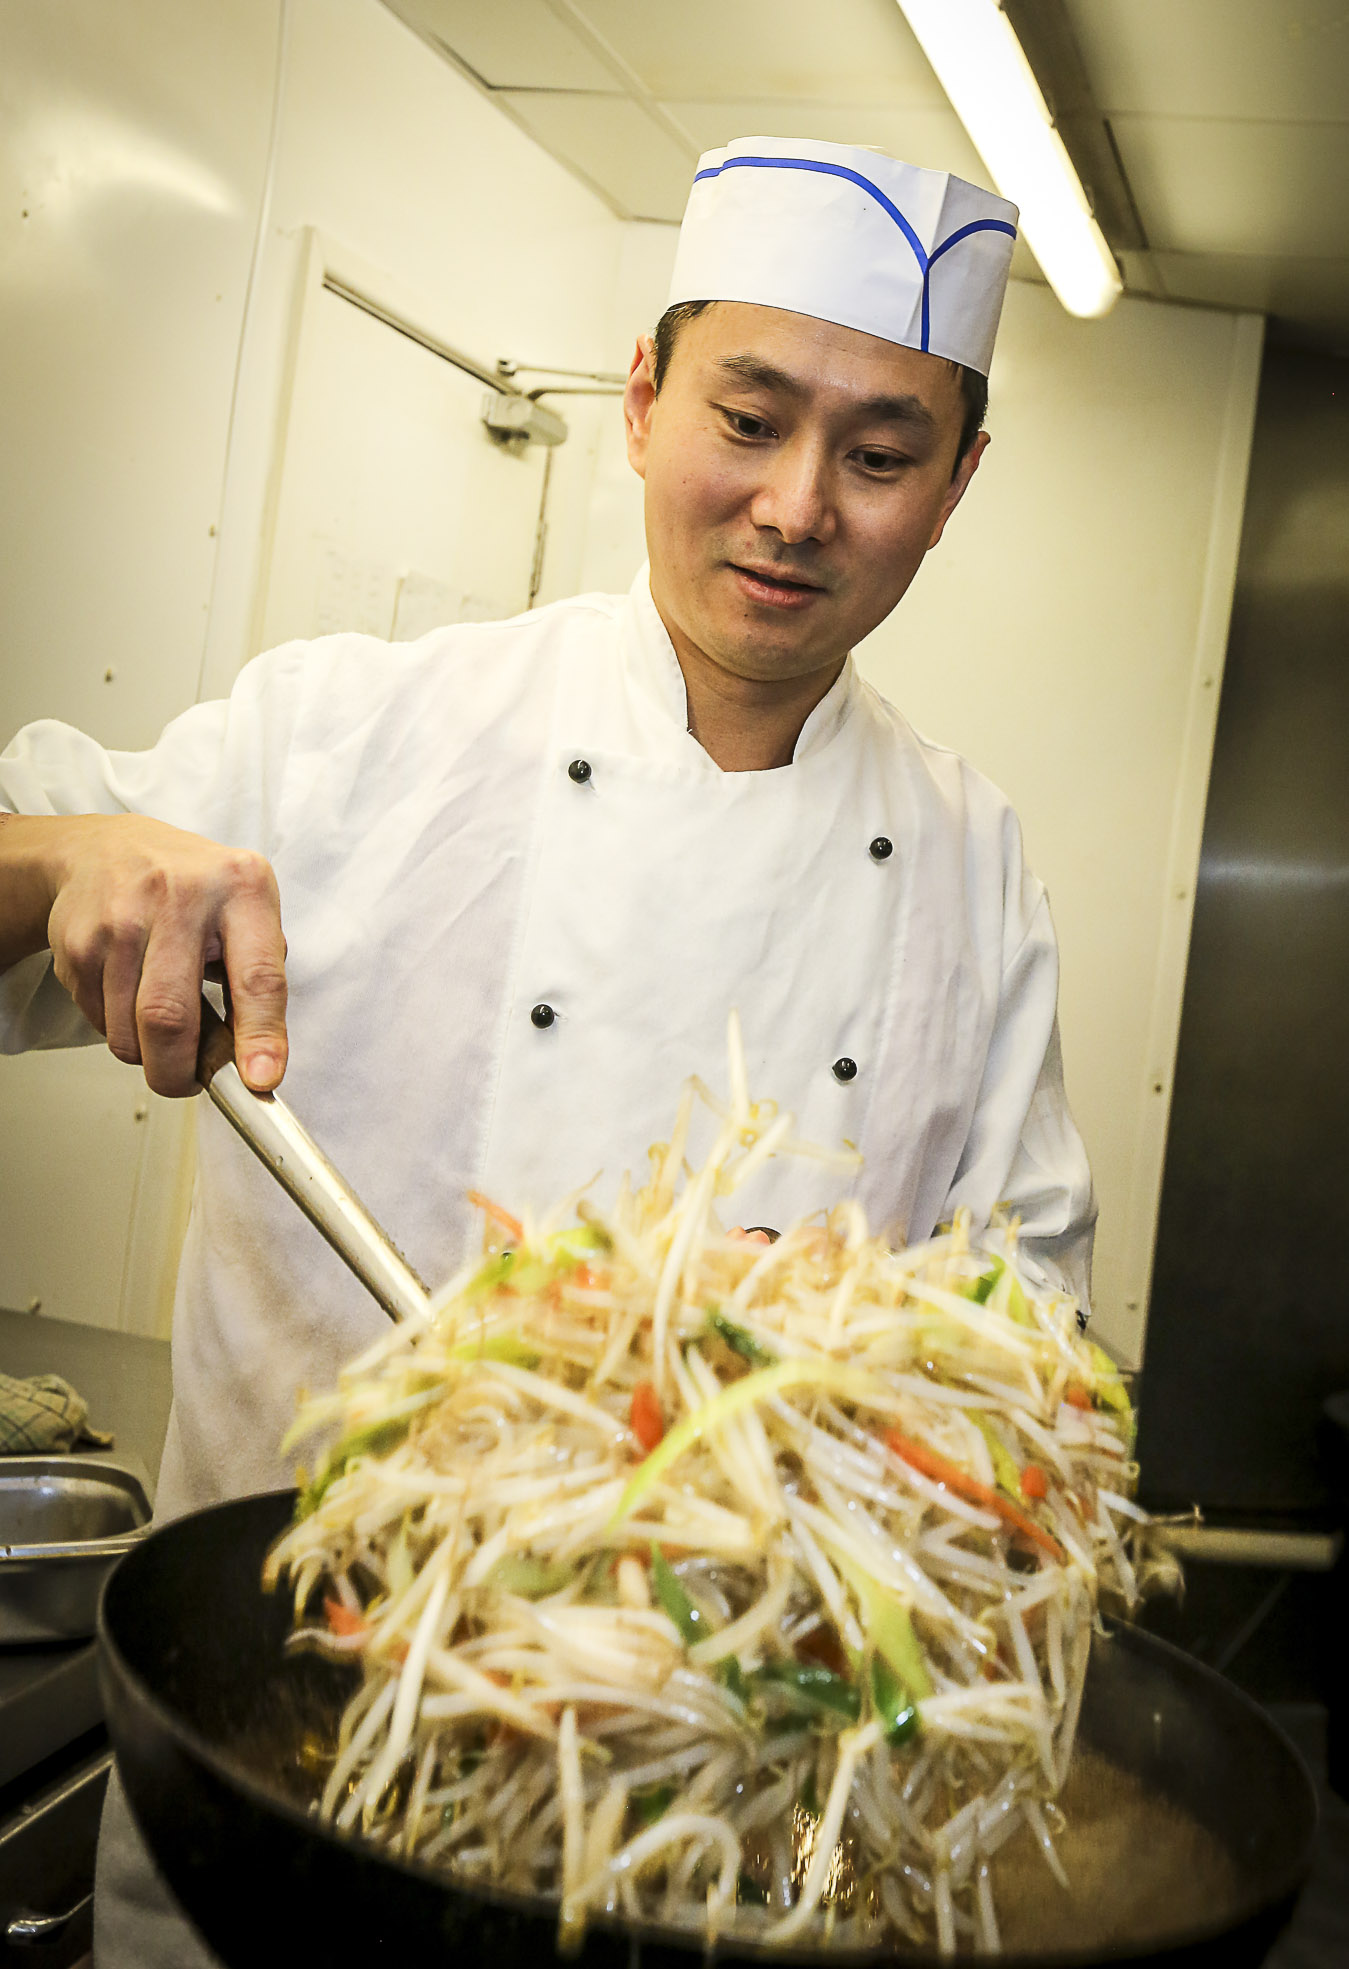 Chef Brings Taste Of Chinese New Year To Wrexham News By